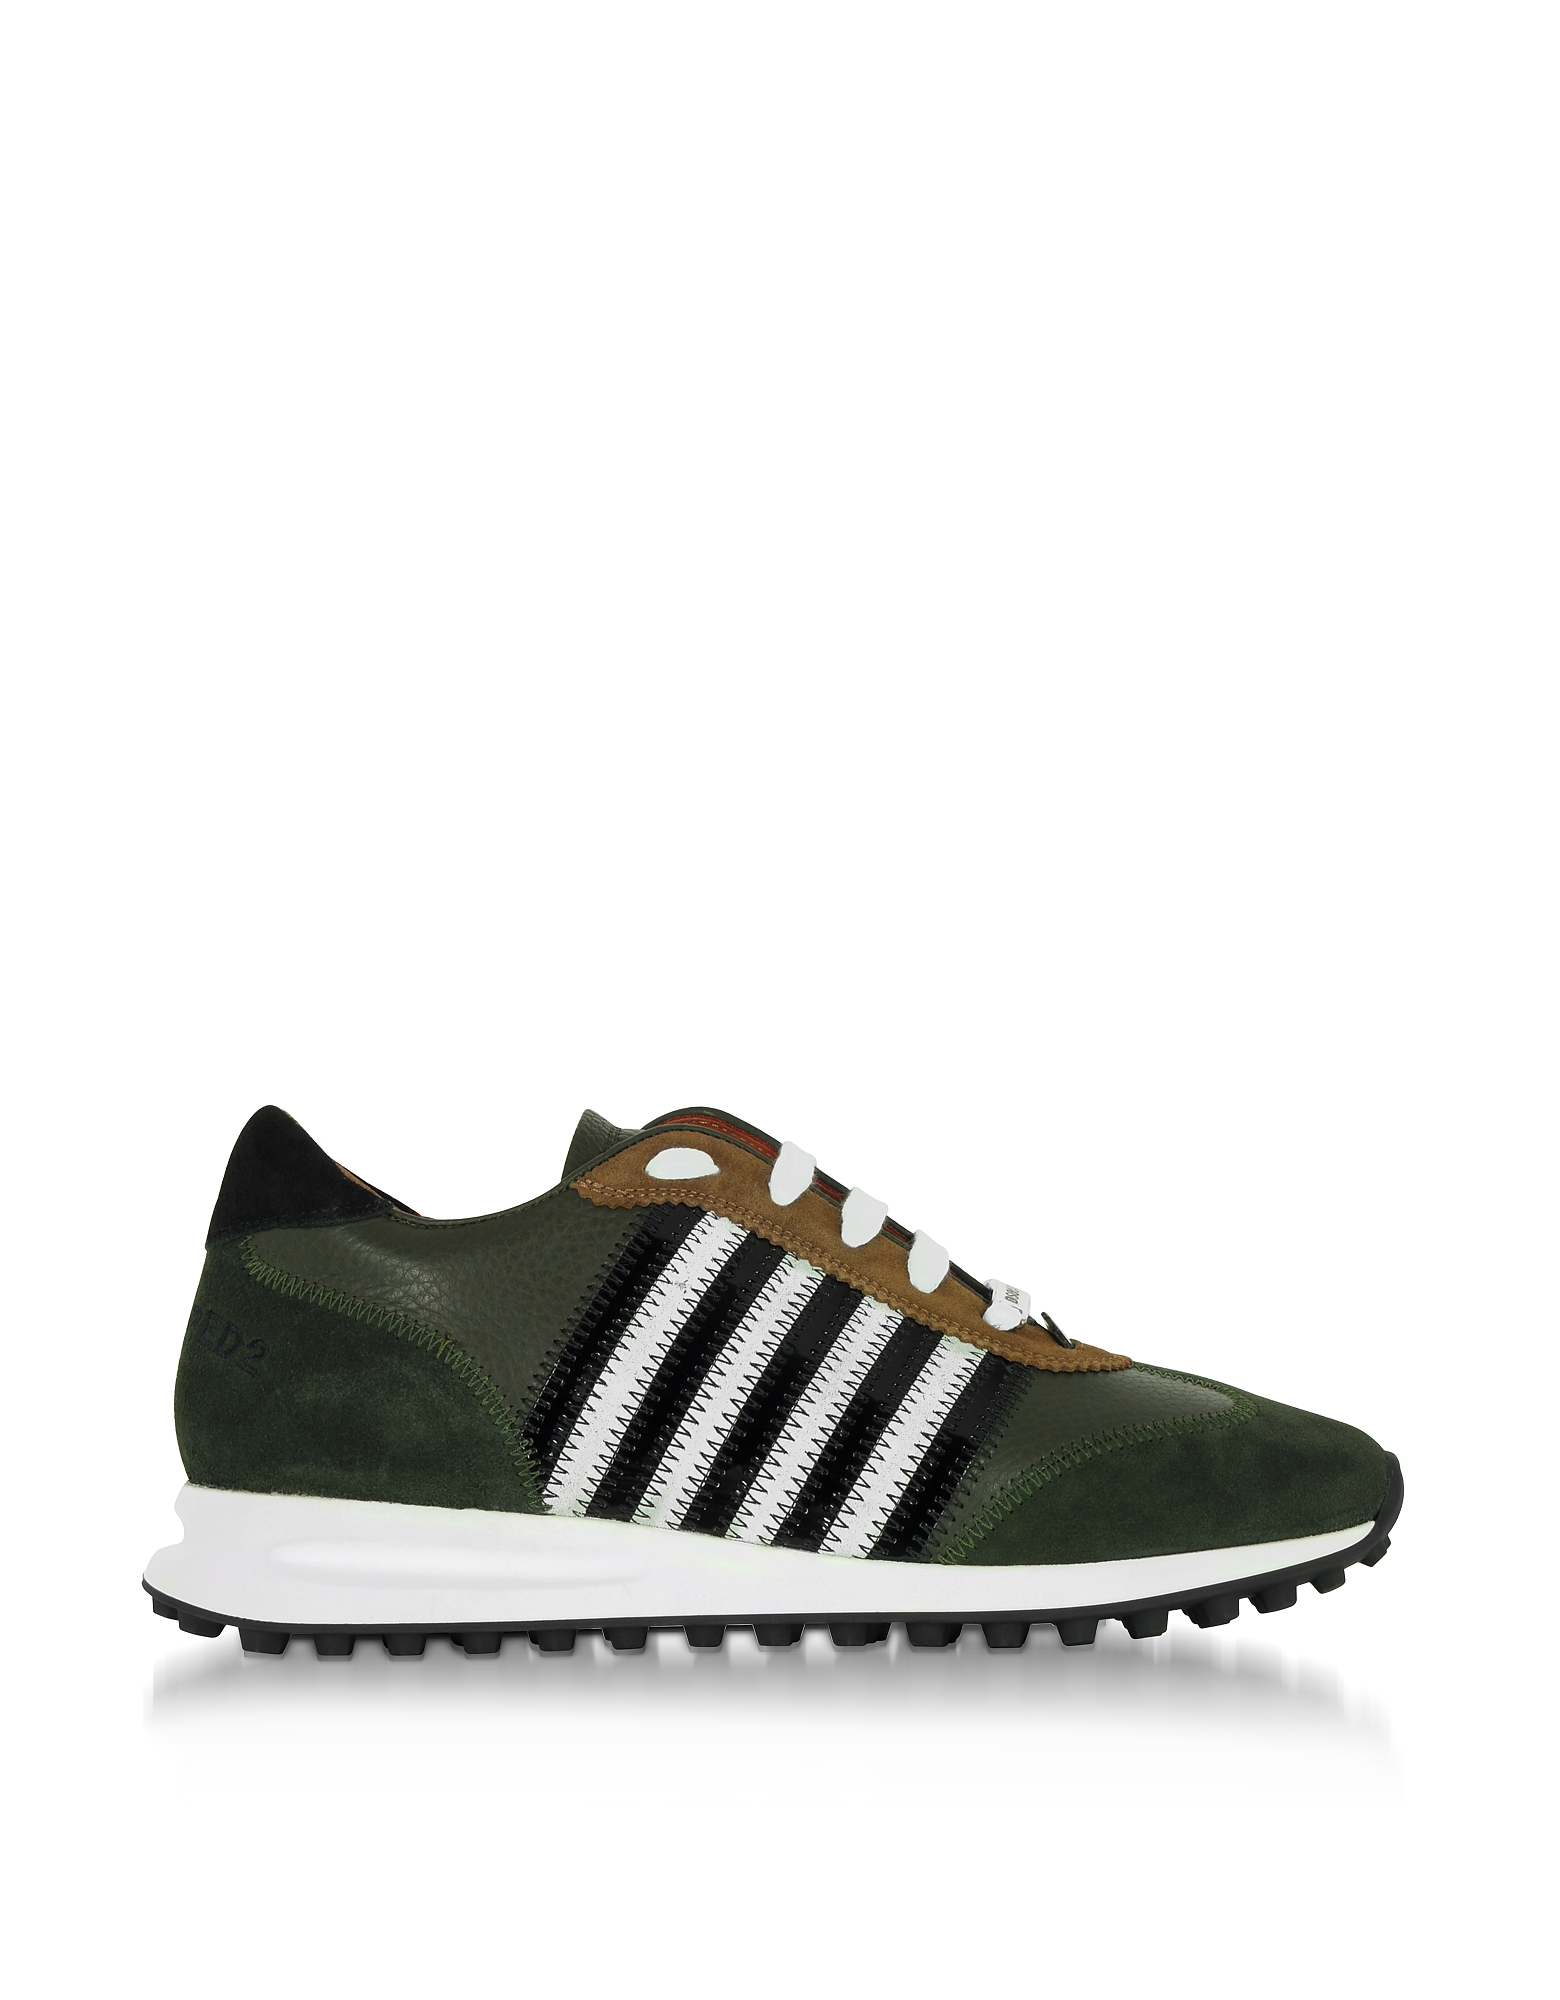 DSquared2 Shoes, Green Leather and Suede New Running Hiking Men's Sneakers